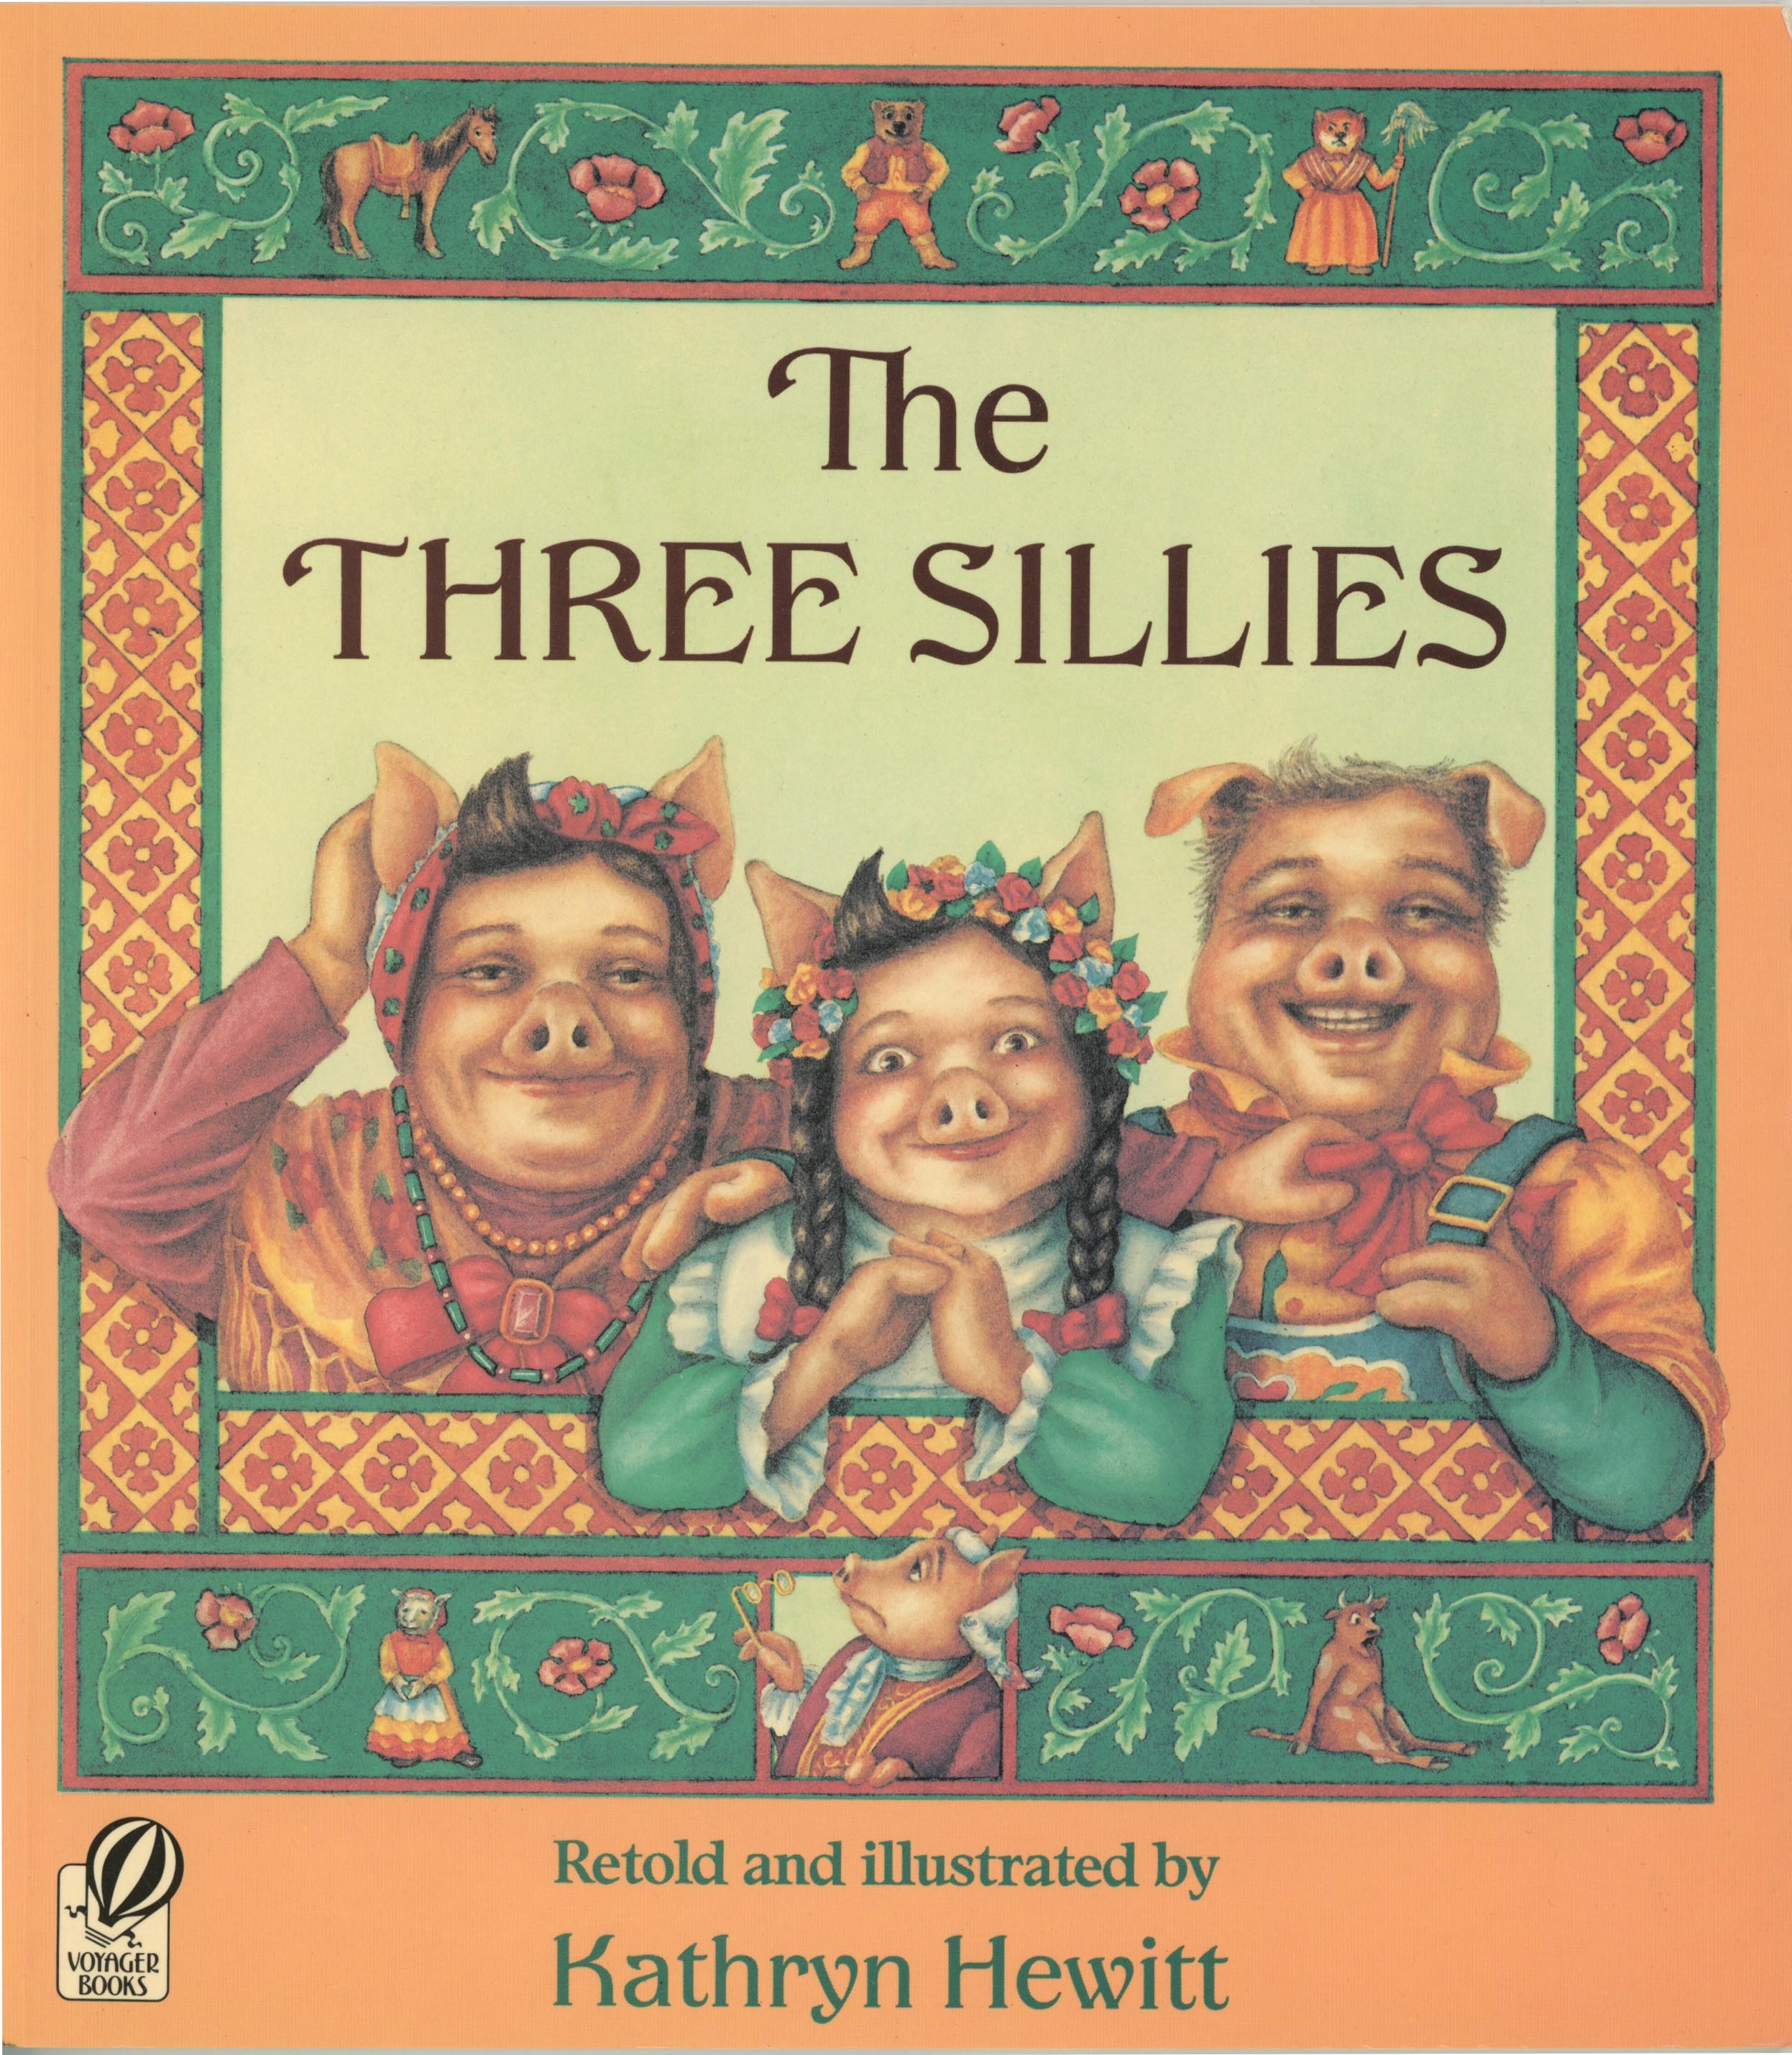 The Three Sillies - Retold and illustrated by Kathryn HewittHarcourt 1986Disillusioned by his sweetheart and her parents who he thinks are the silliest people in the world, a pompous young man embarks on a a quest to find three bigger sillies in a colorfully illustrated version of the classic folktale. --Forcast